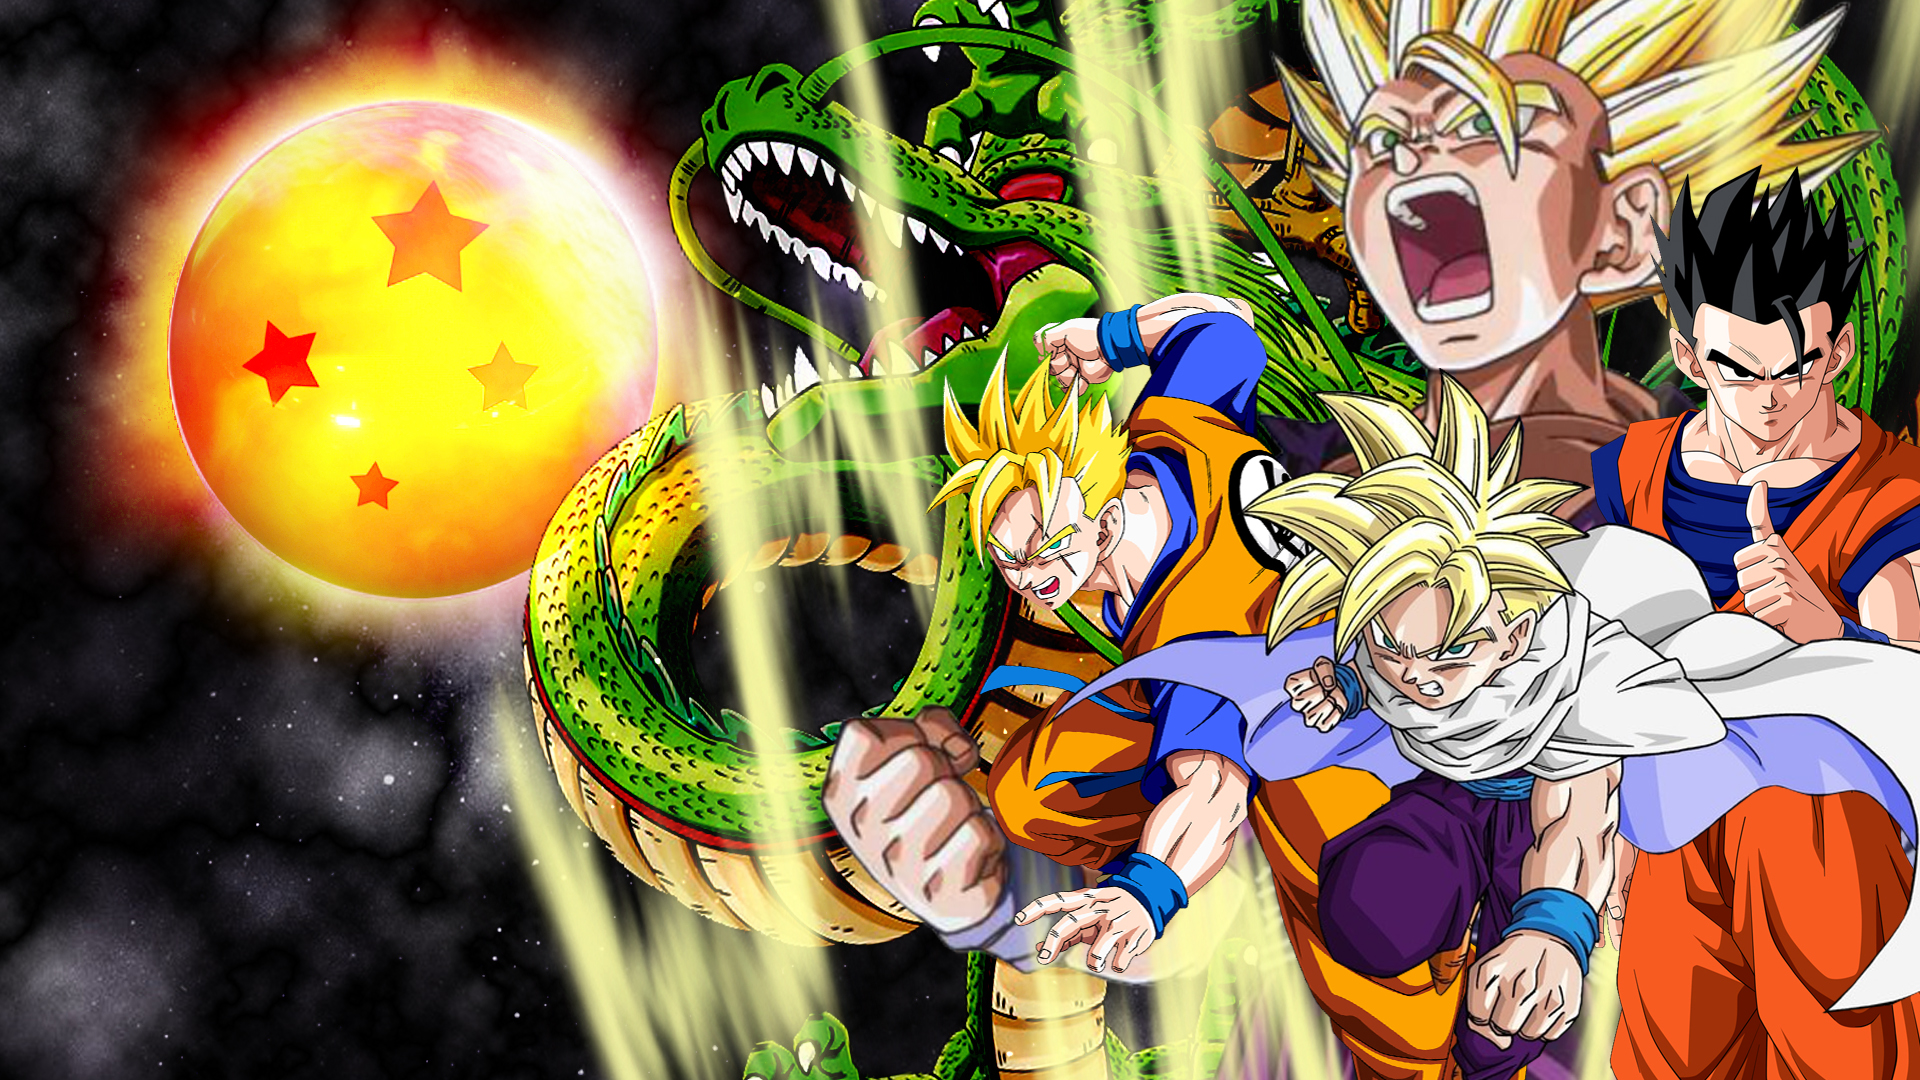 Gohan Vs Cell Wallpaper Gohan wallpaper by vulc4no 1920x1080